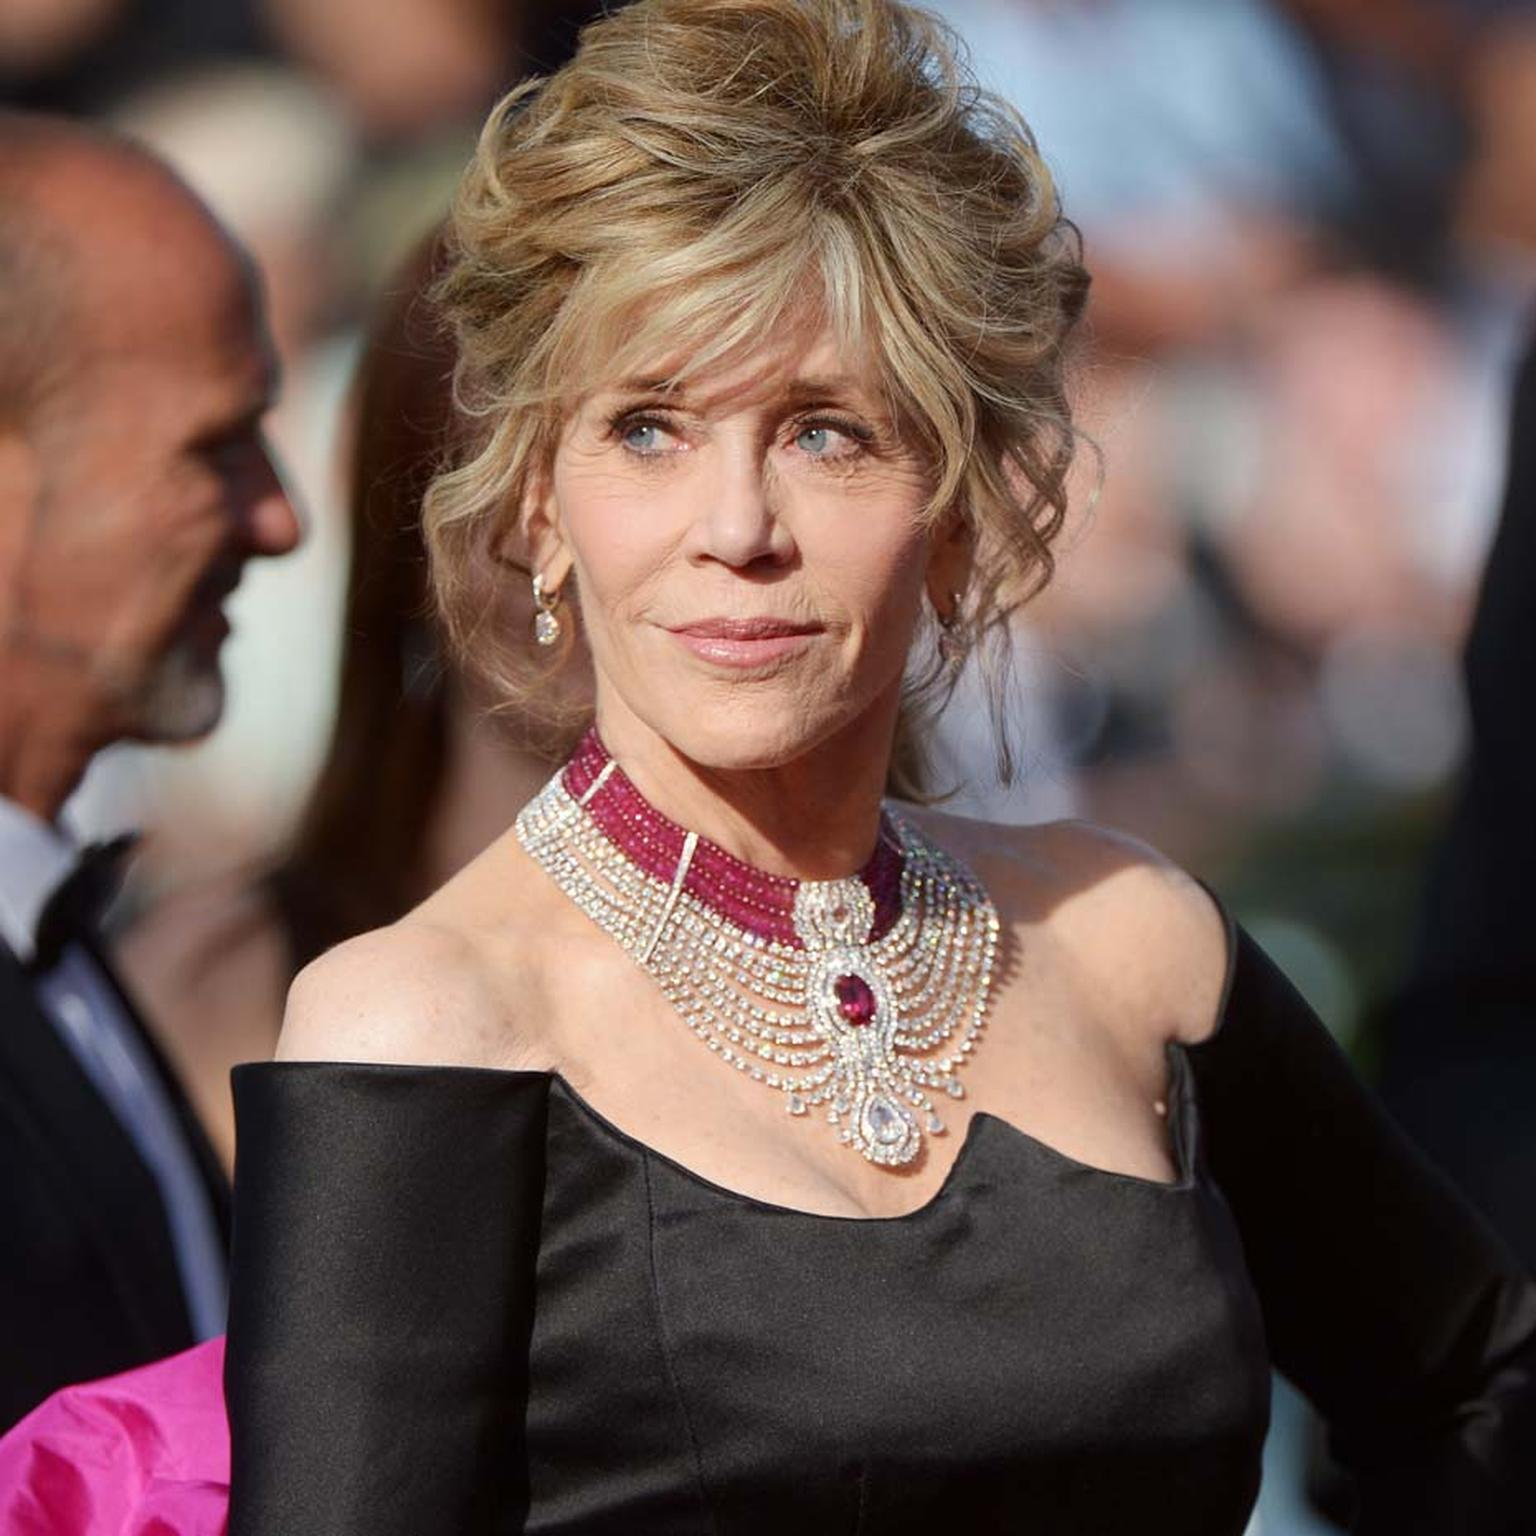 Jane Fonda gave actresses half her age a run for their money, sweeping down the Cannes red carpet for the premiere of her new film Youth wearing a stunning one-of-a-kind diamond and ruby Cartier necklace featuring a 15.29ct oval-cut Mozambique ruby.